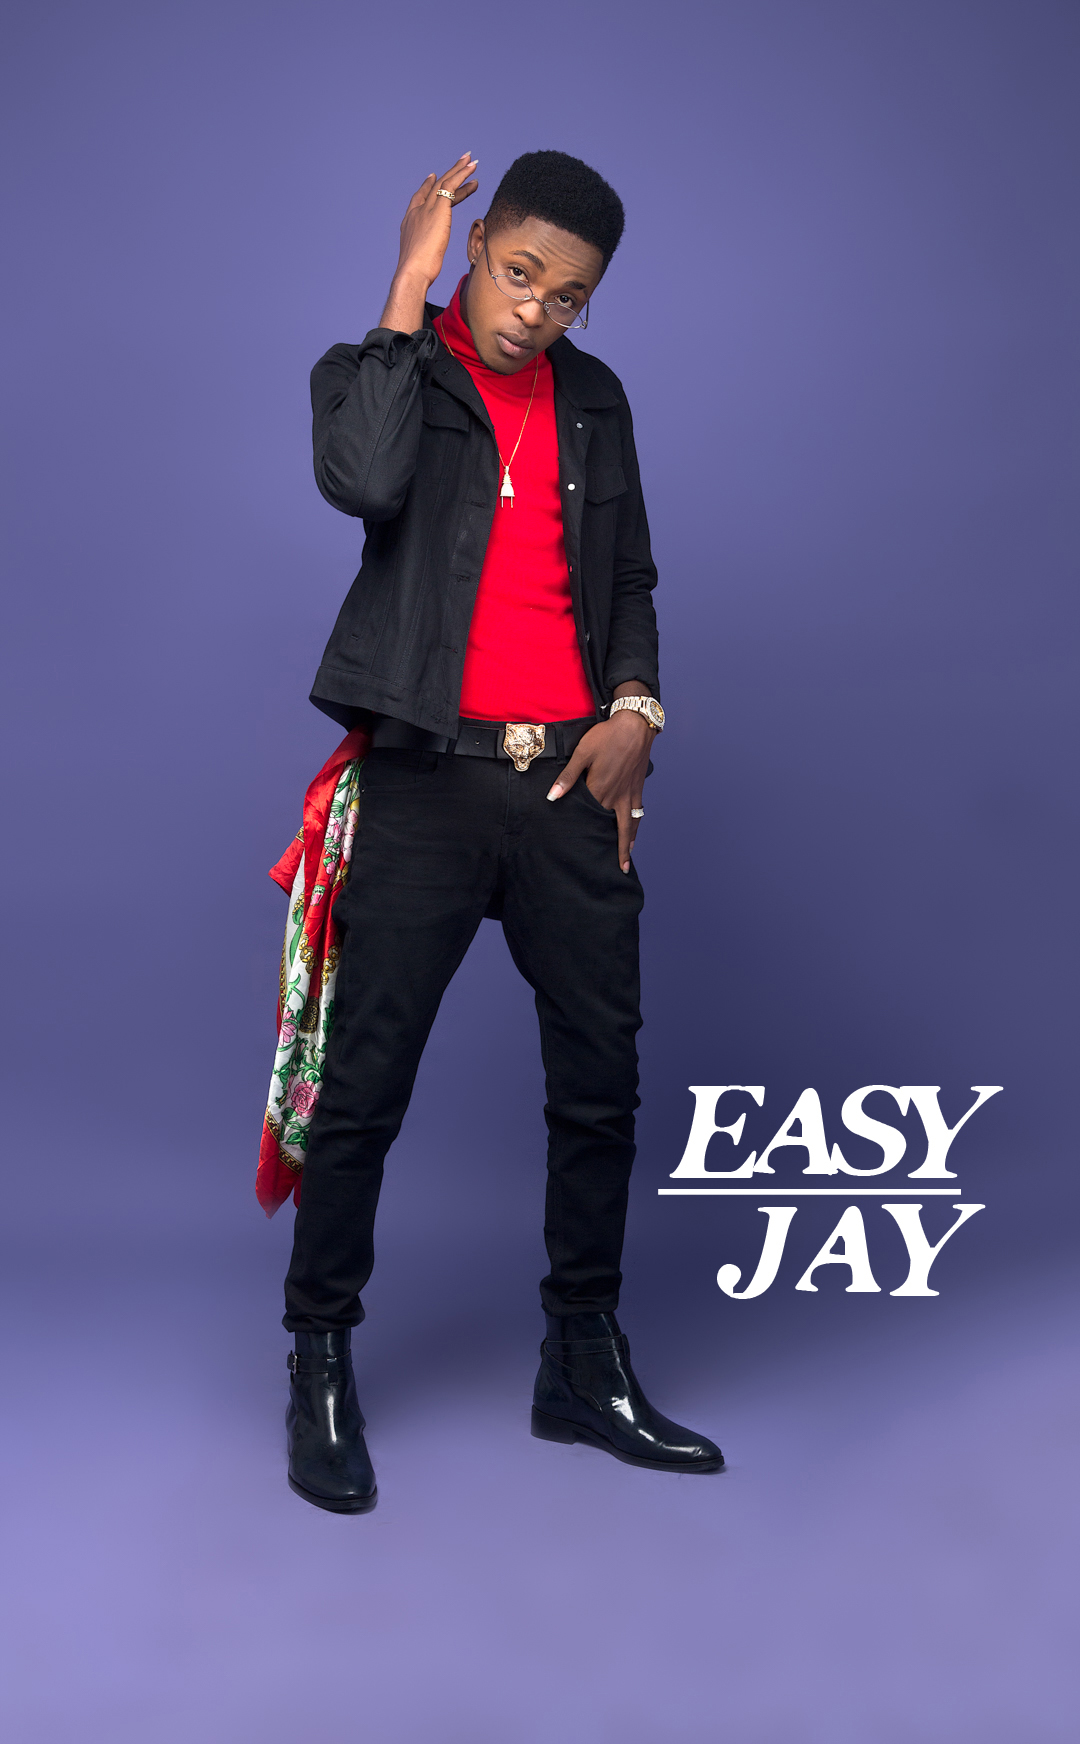 Image result for easy jay